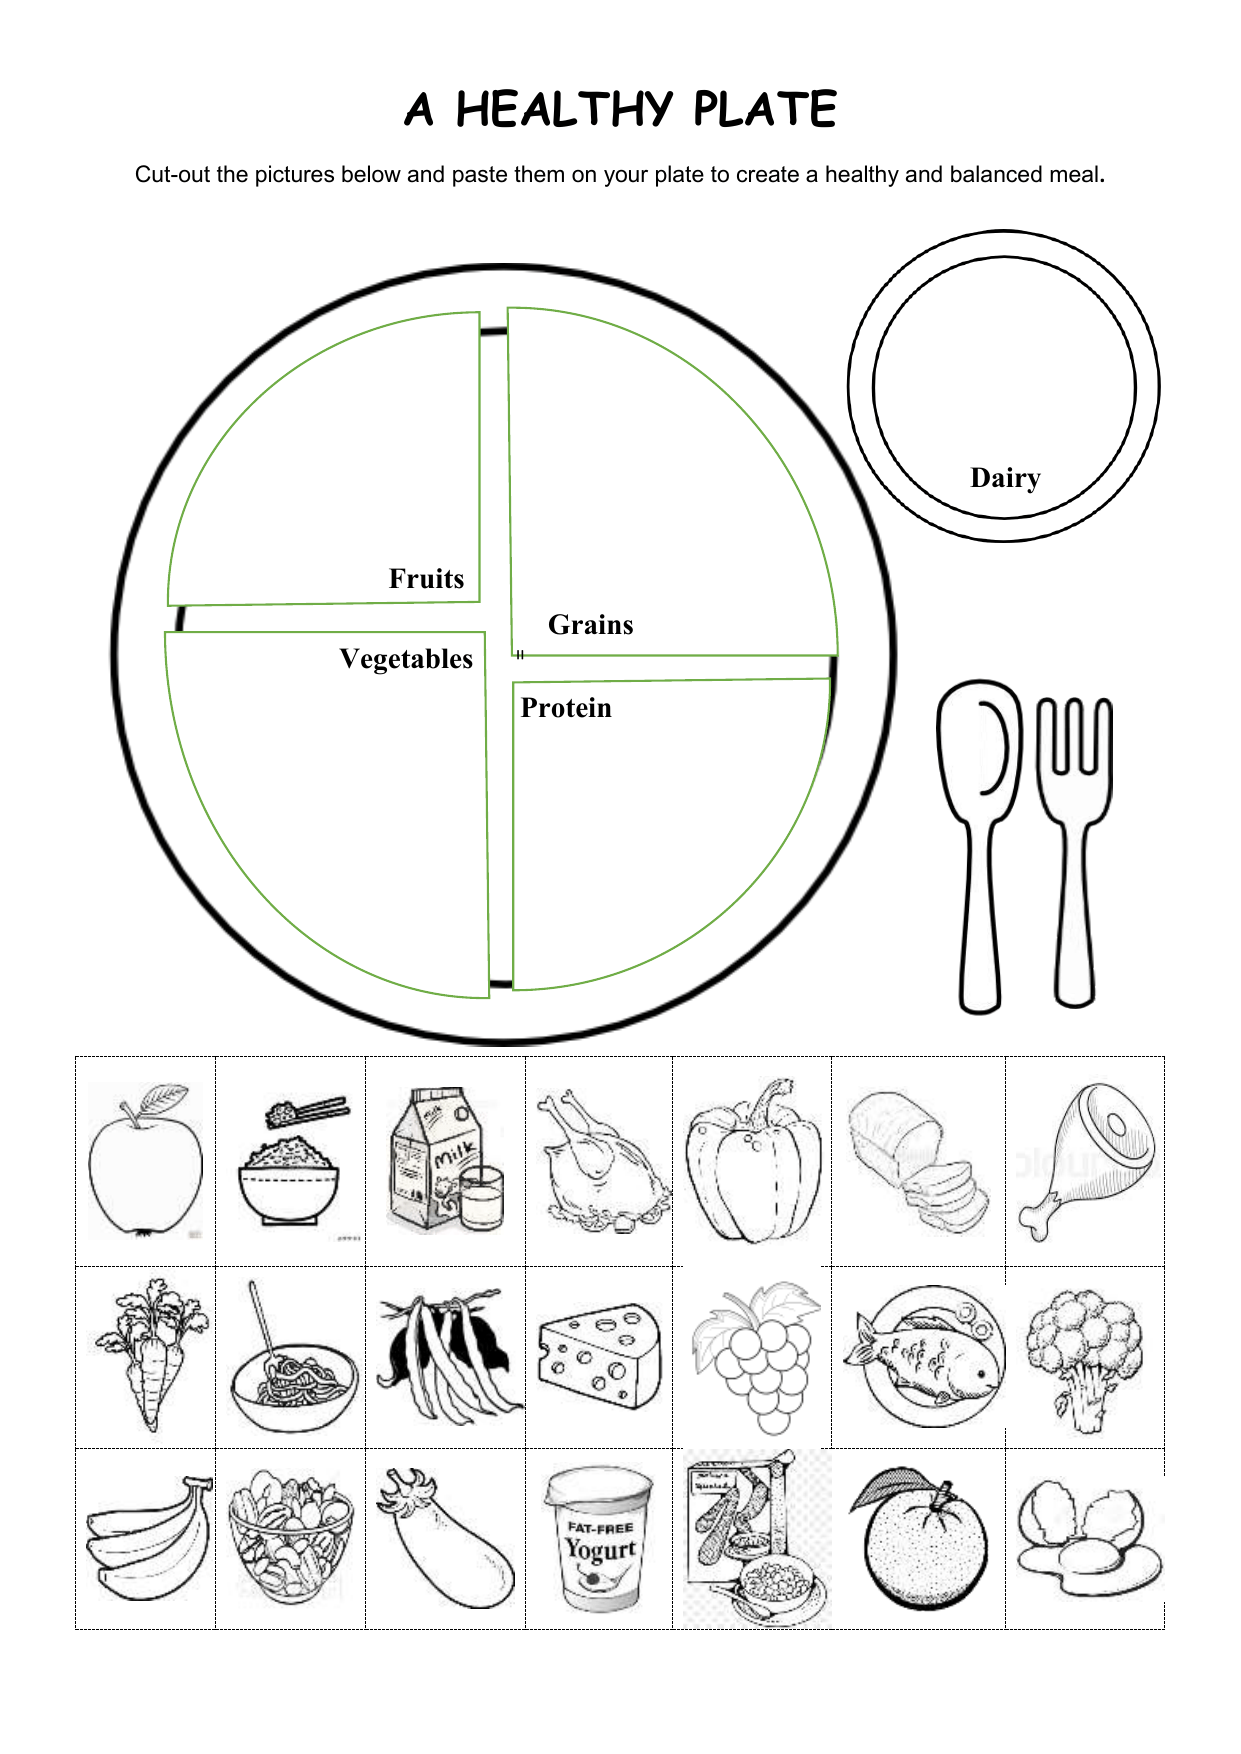 A Healthy Plate